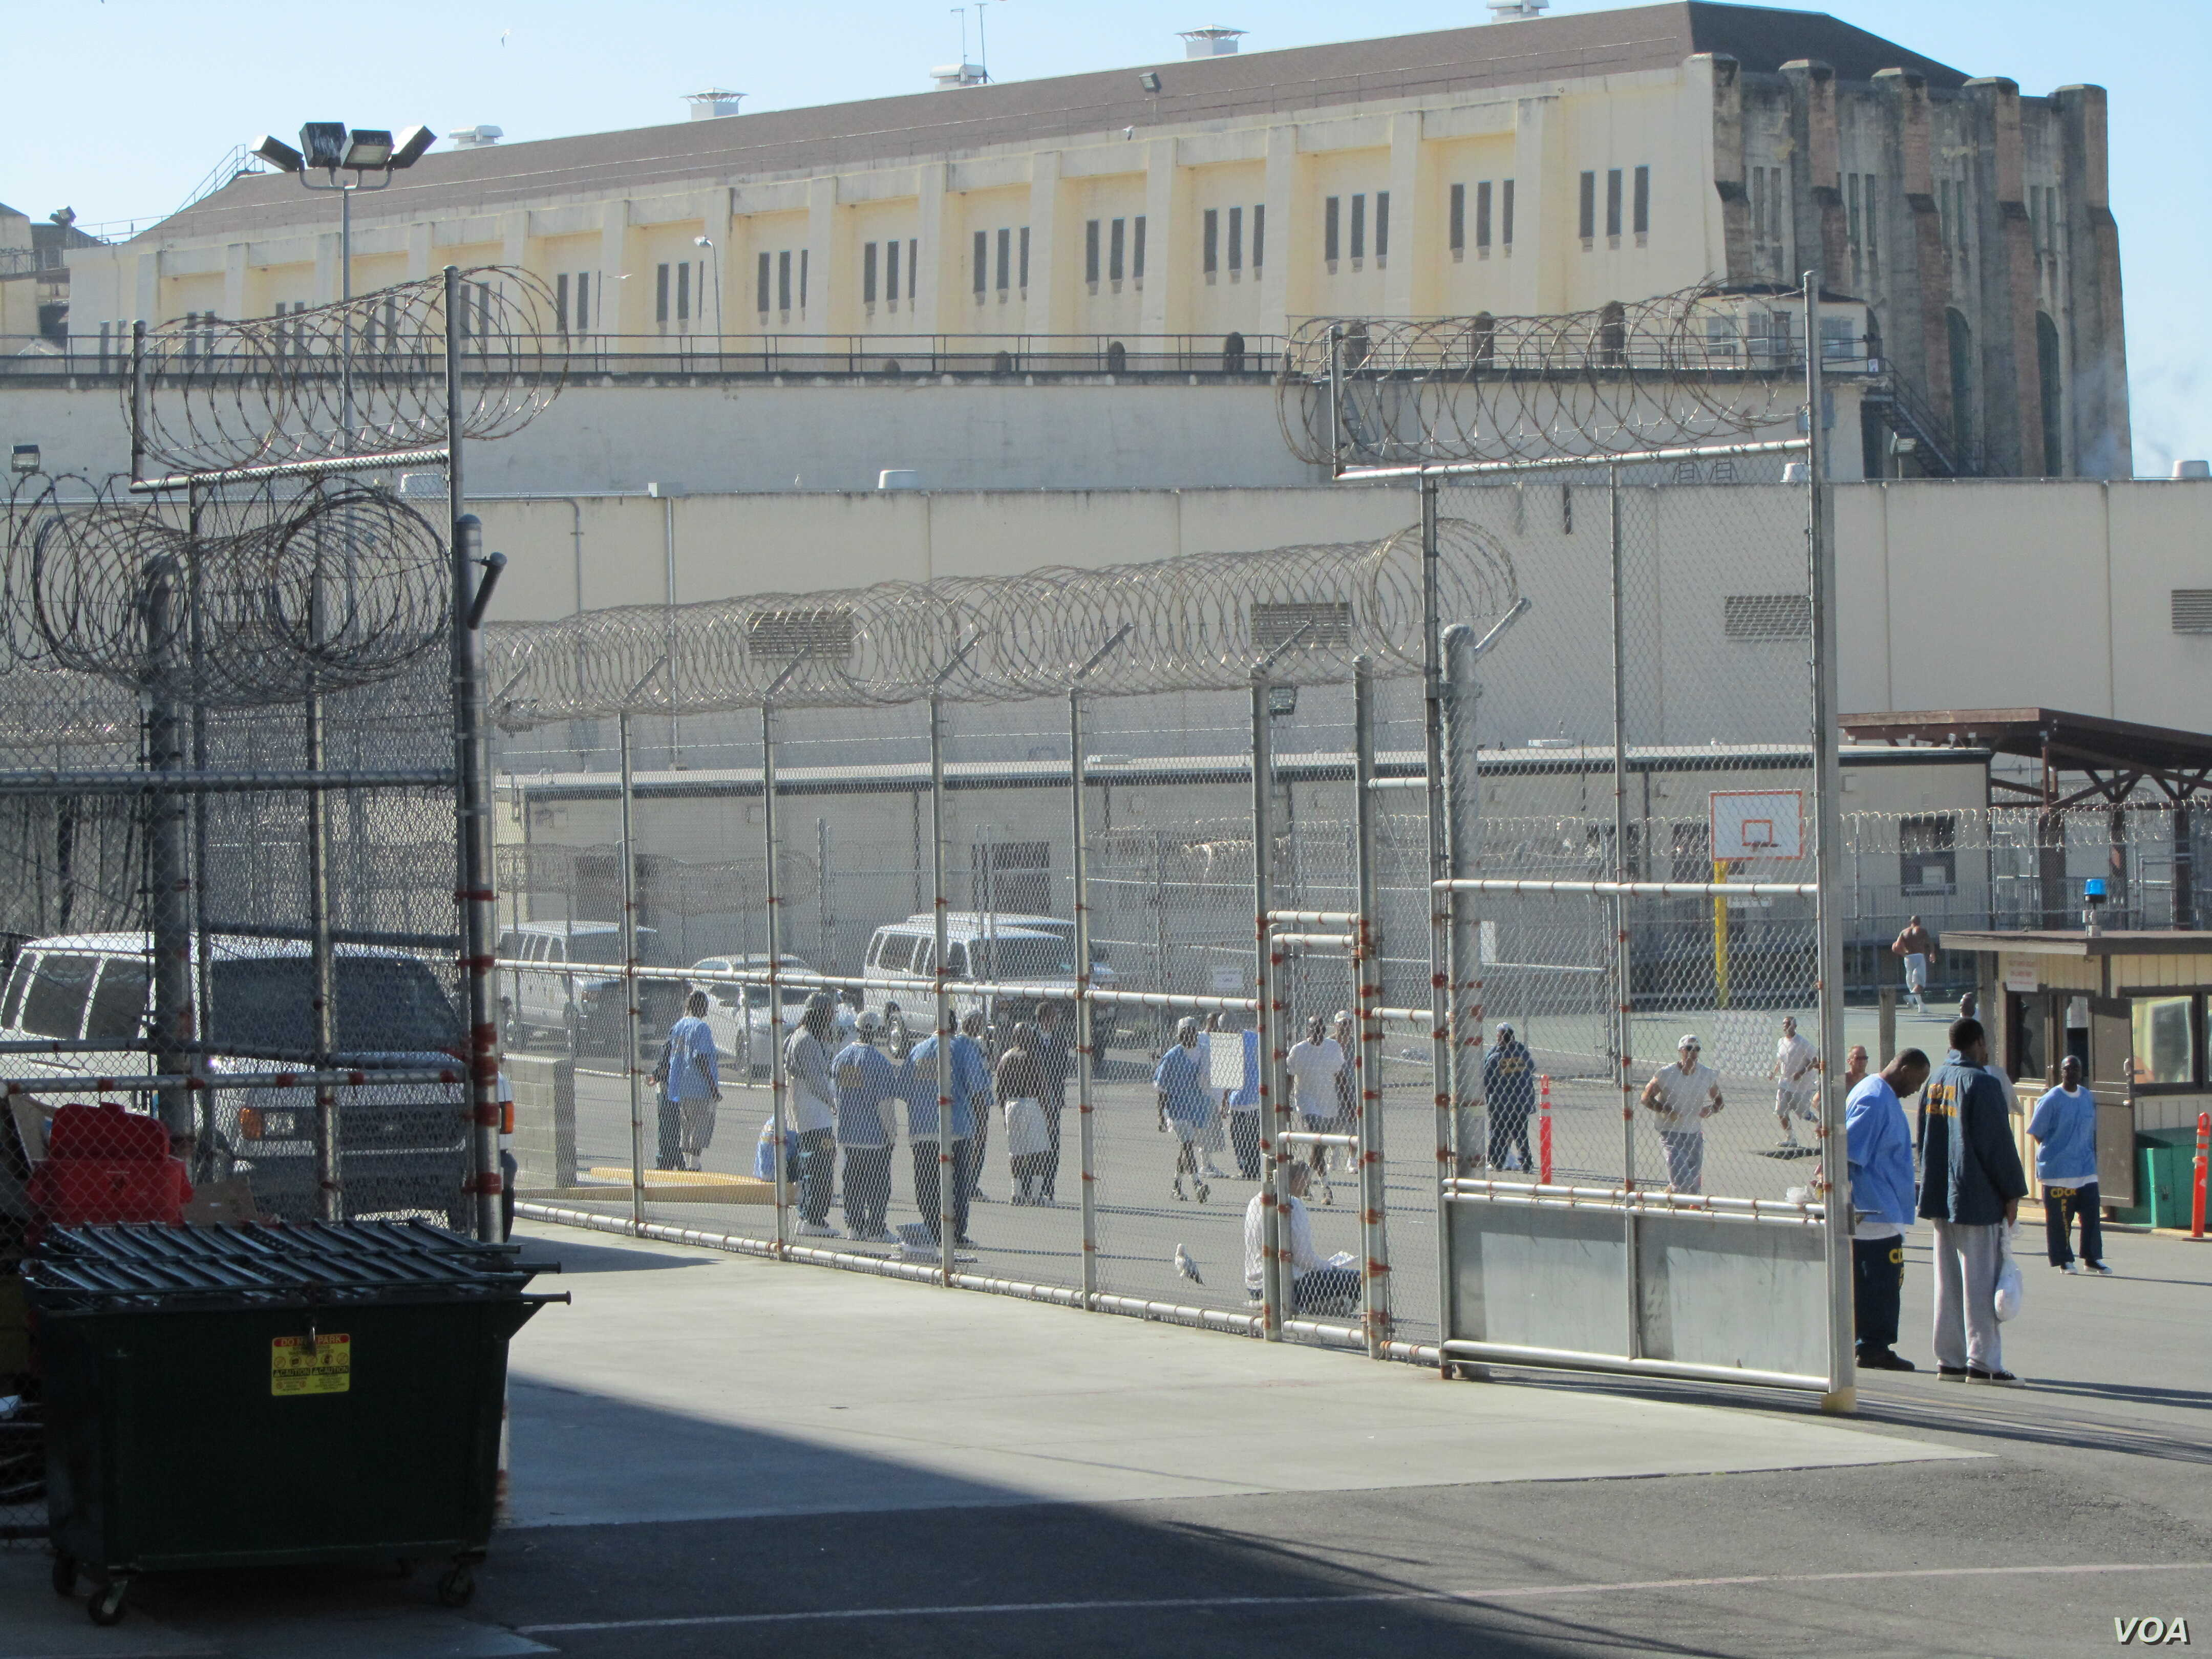 More than 4000 men are held at San Quentin State Prison, California's oldest correctional institution. (VOA / JoAnn Mar)